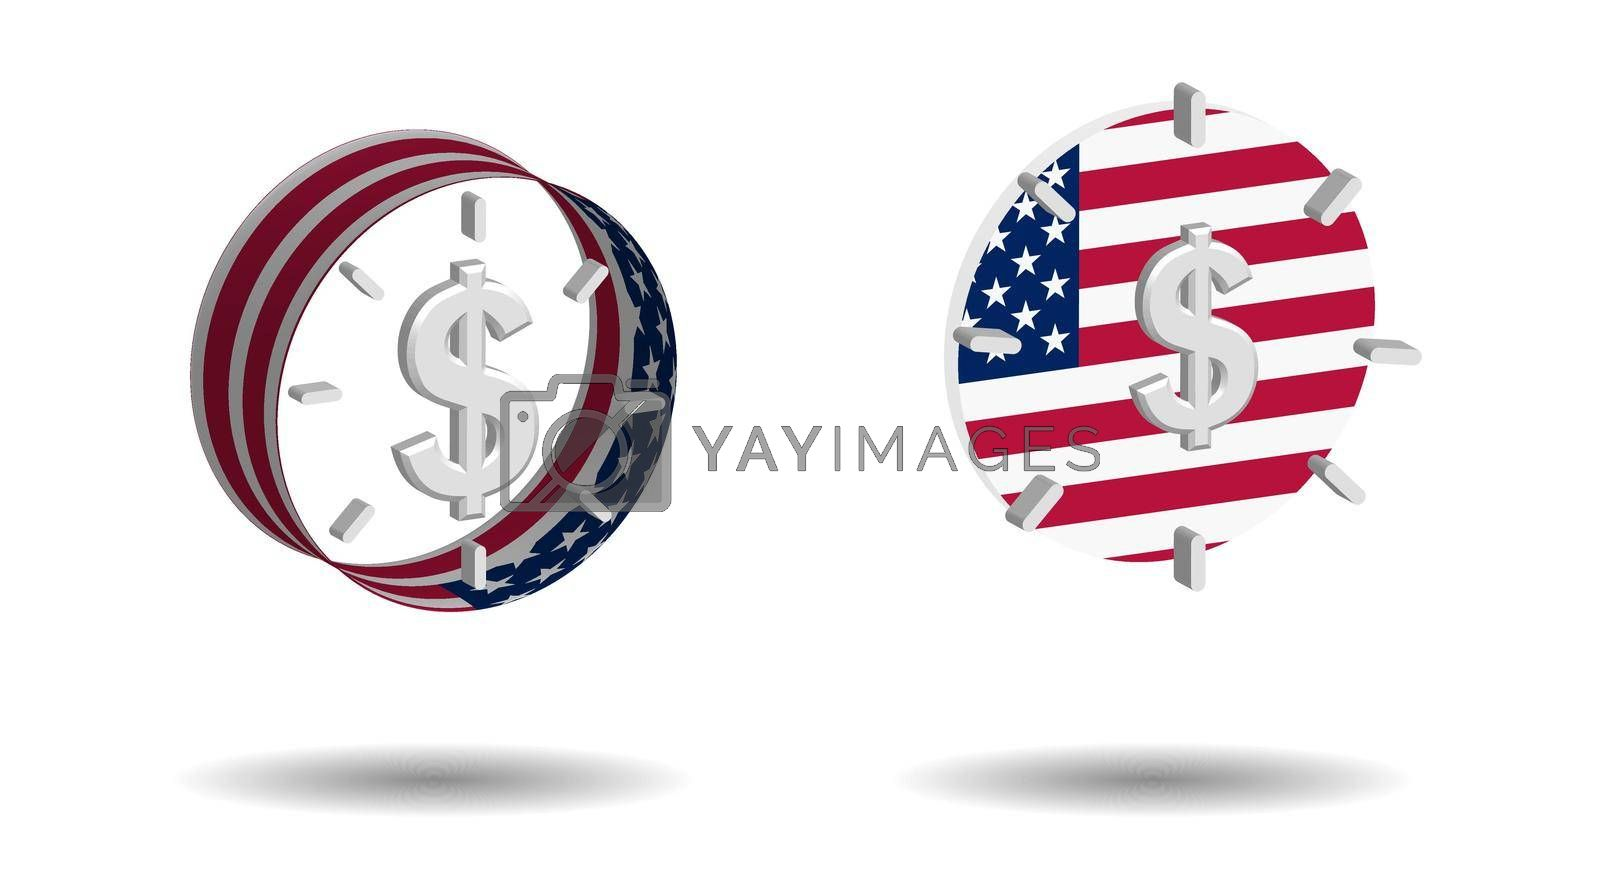 set of multi-colored alarm clocks with us dollar sign and american flag elements on a transparent background